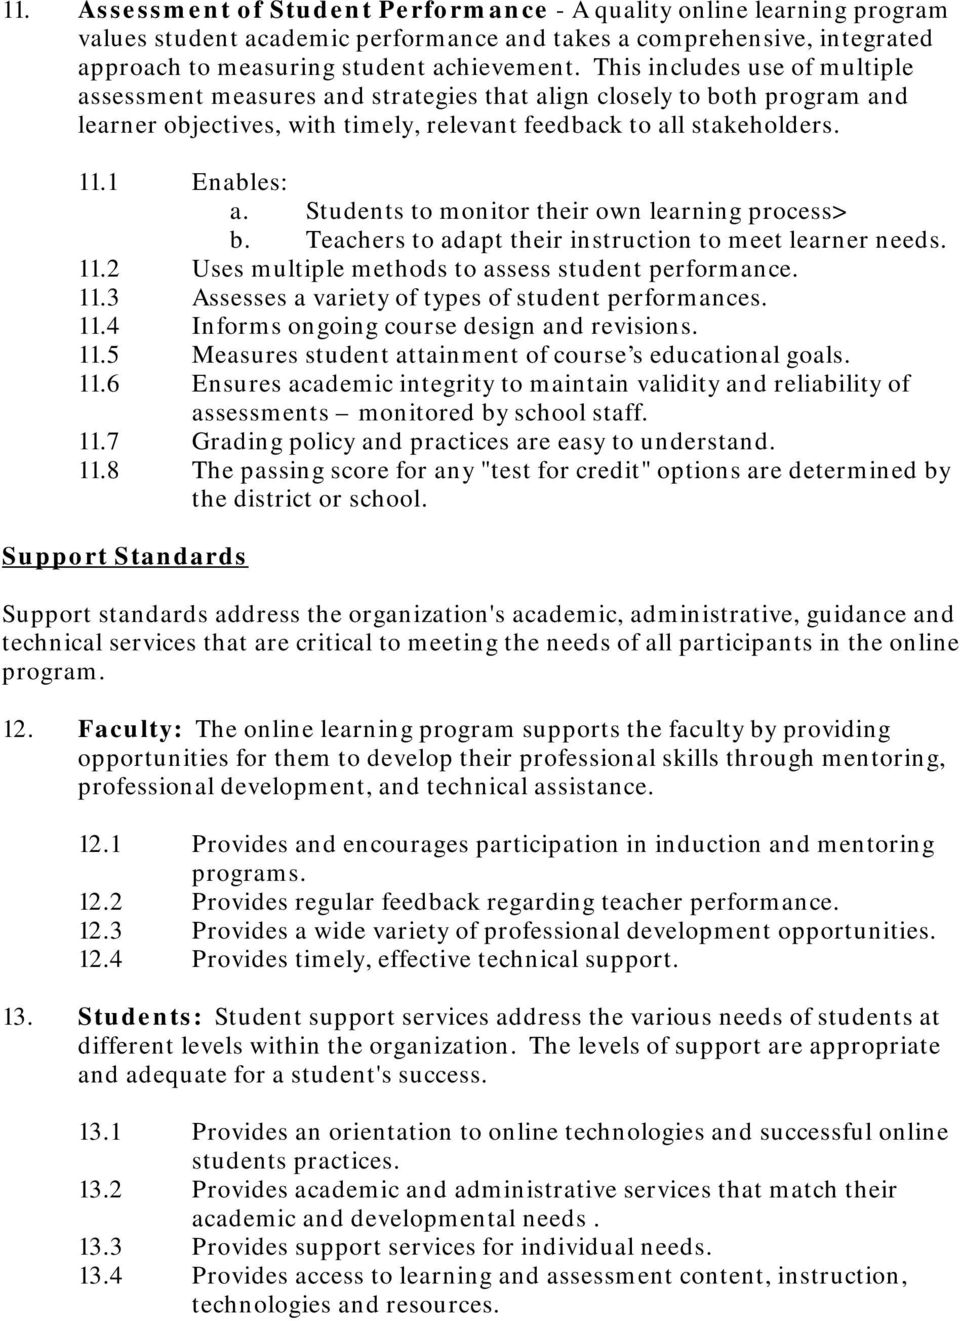 Students to monitor their own learning process> b. Teachers to adapt their instruction to meet learner needs. 11.2 Uses multiple methods to assess student performance. 11.3 Assesses a variety of types of student performances.